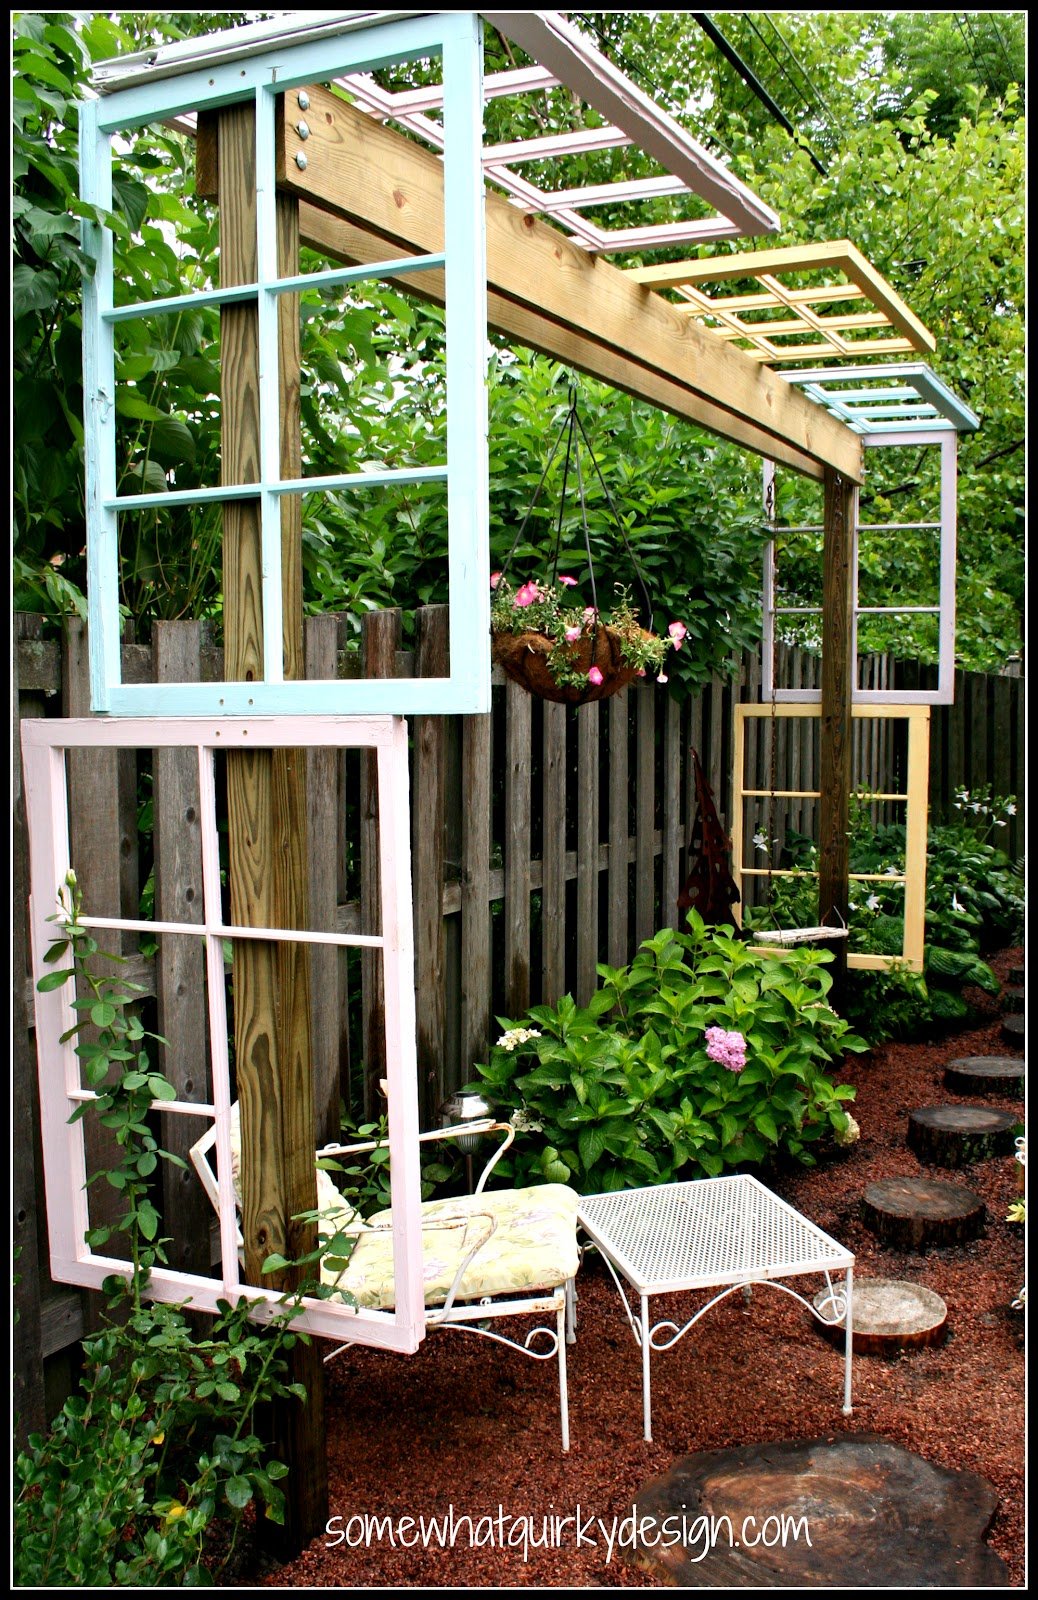 Old window pergola by Somewhat Quirky, featured on Funky Junk Interiors